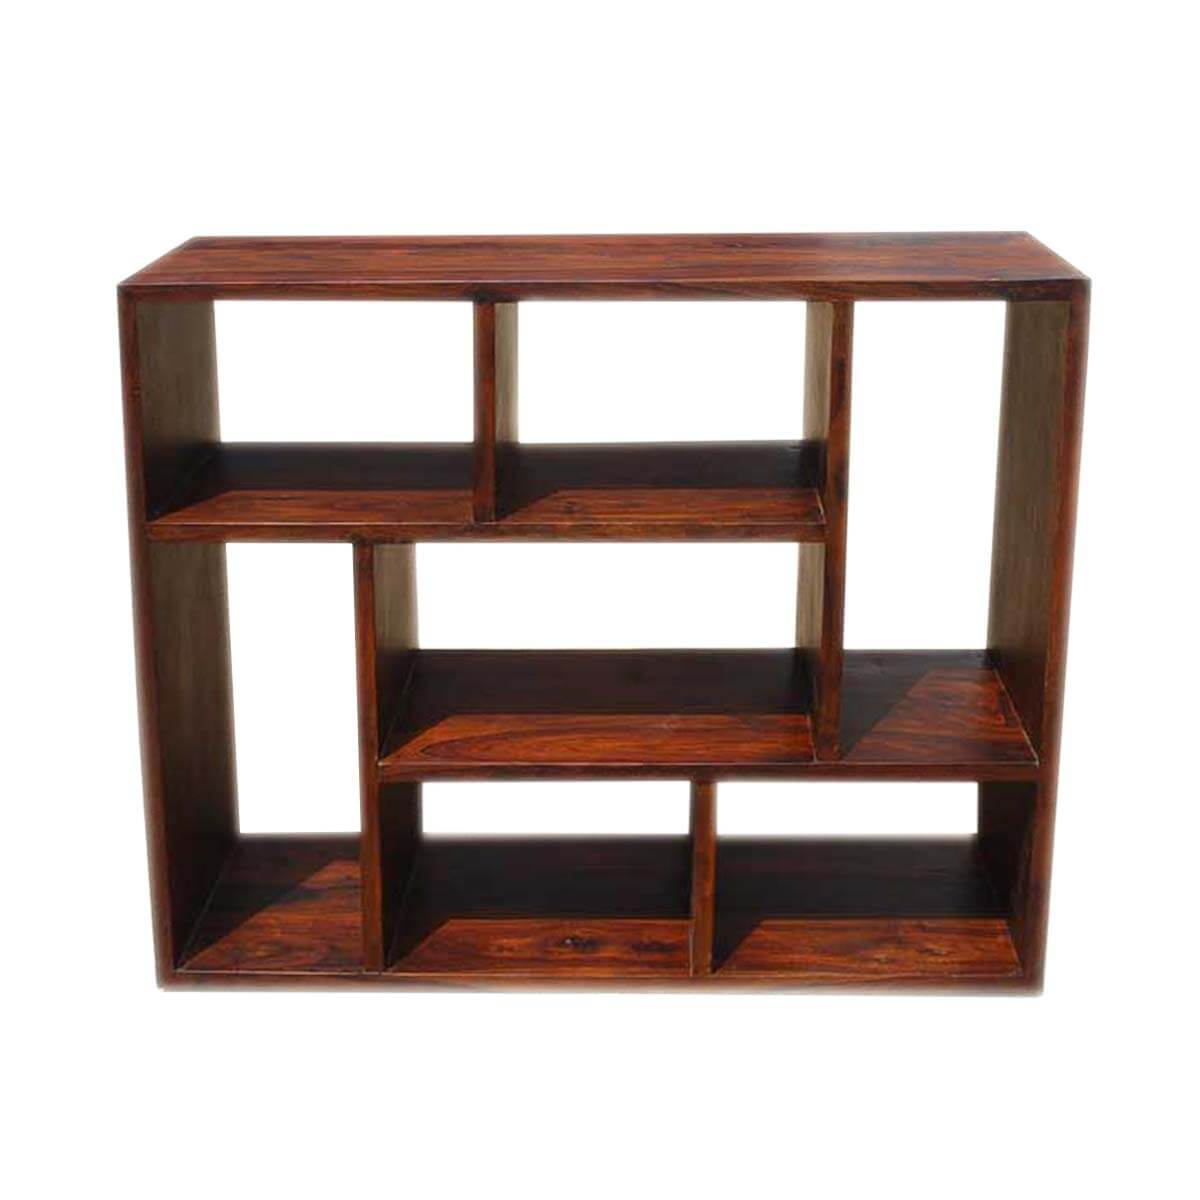 Asymmetrical Cube Bookcase Contemporary Wooden Display Cabinet Shelf